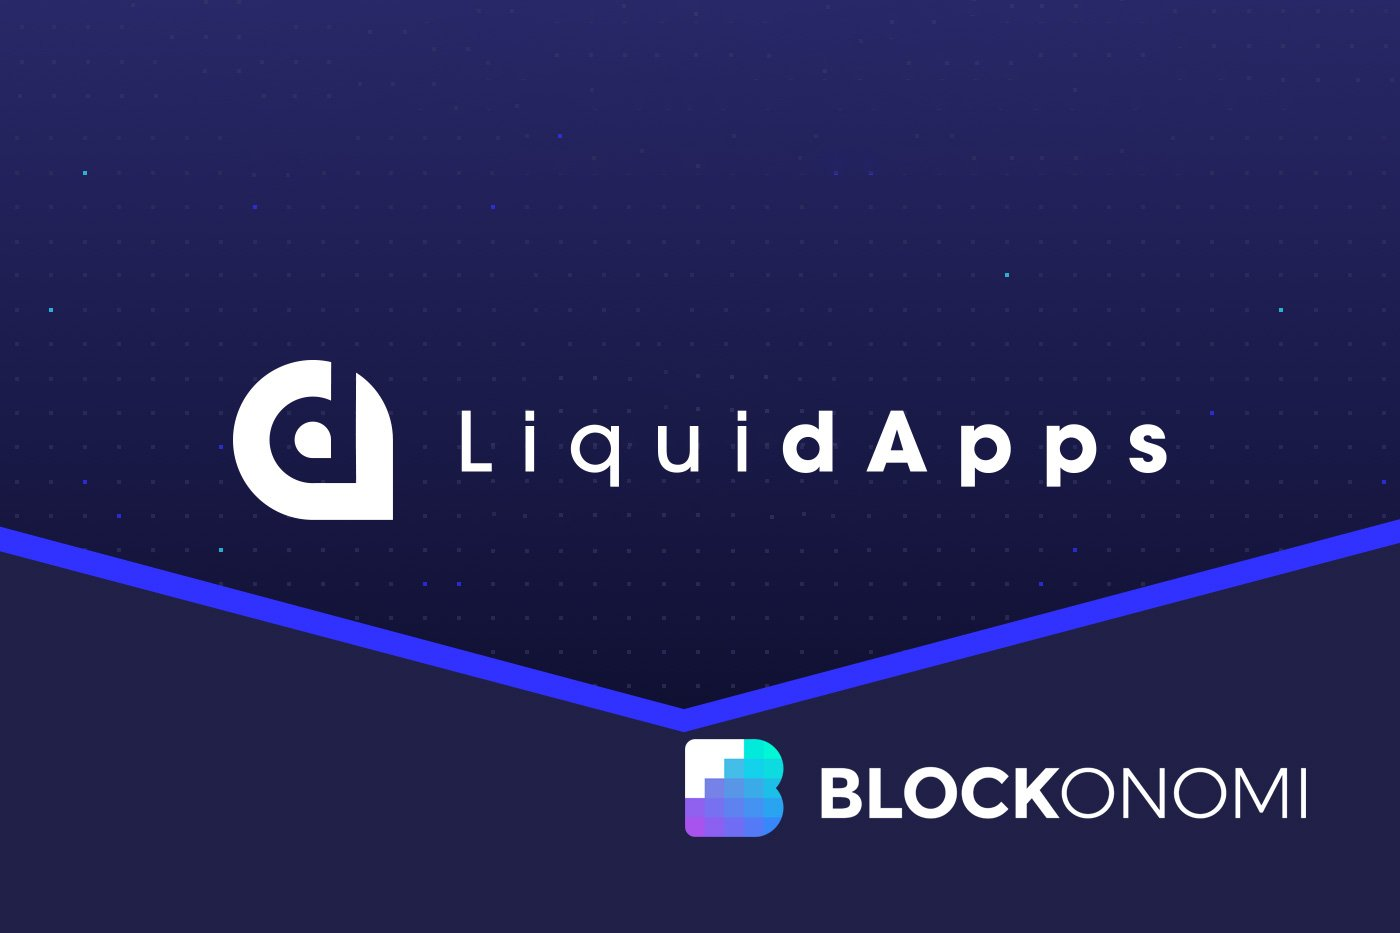 LiquidApps & the DAPP Network: Promoting Mass Scale Adoption of Decentralized Applications